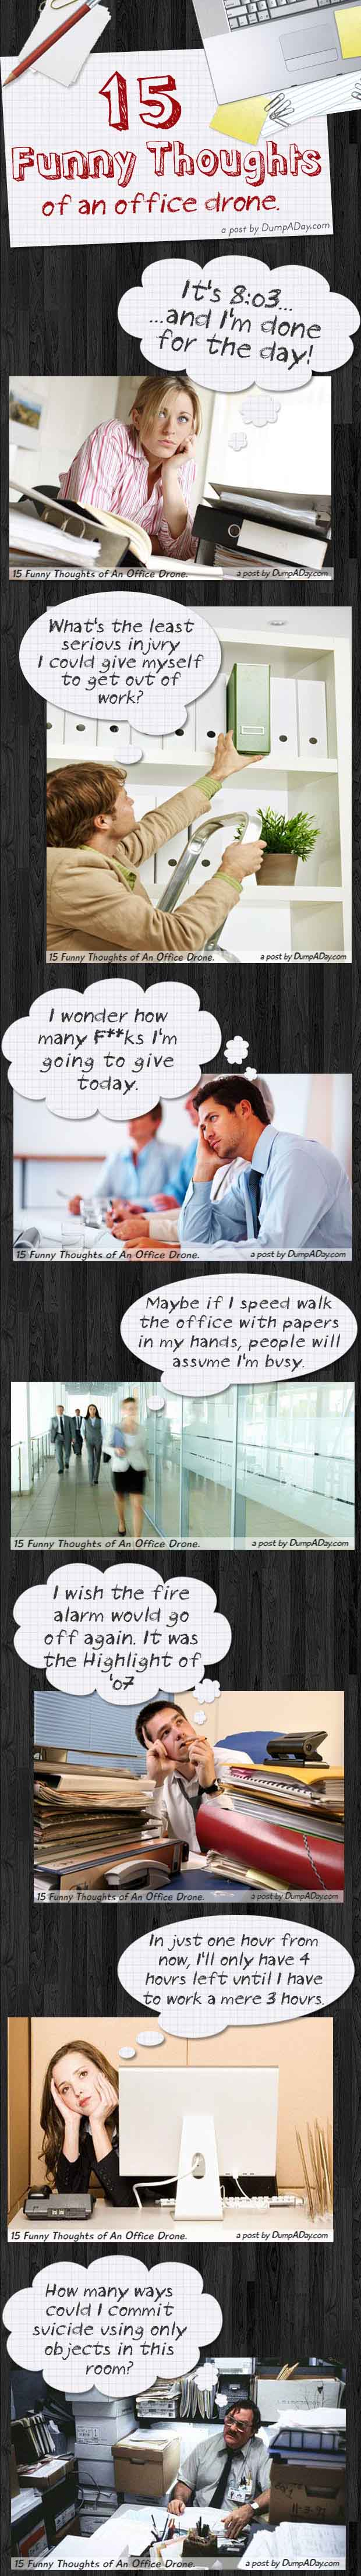 Dump A Day 15 Funny Thoughts Of An Office Drone